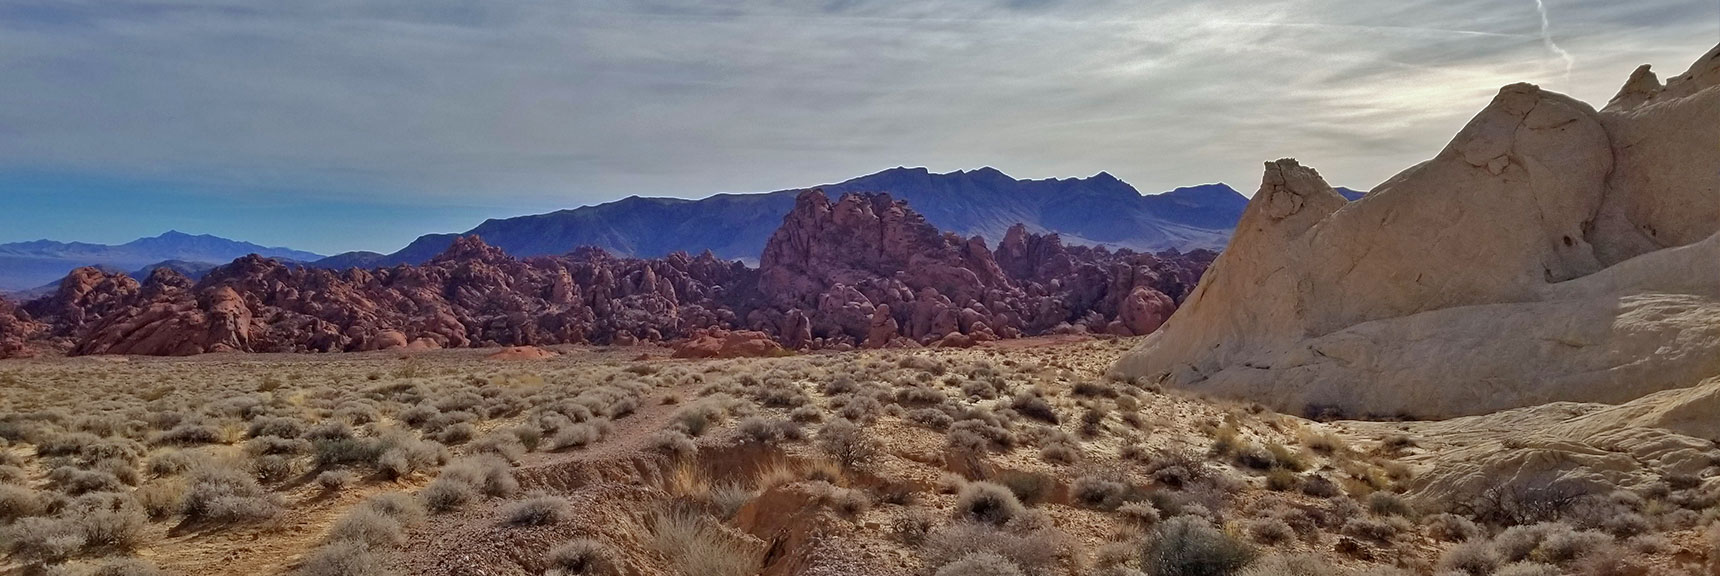 Looking Back on Fire Canyon from Silica Dome and Fire Canyon in Valley of Fire State Park, Nevada